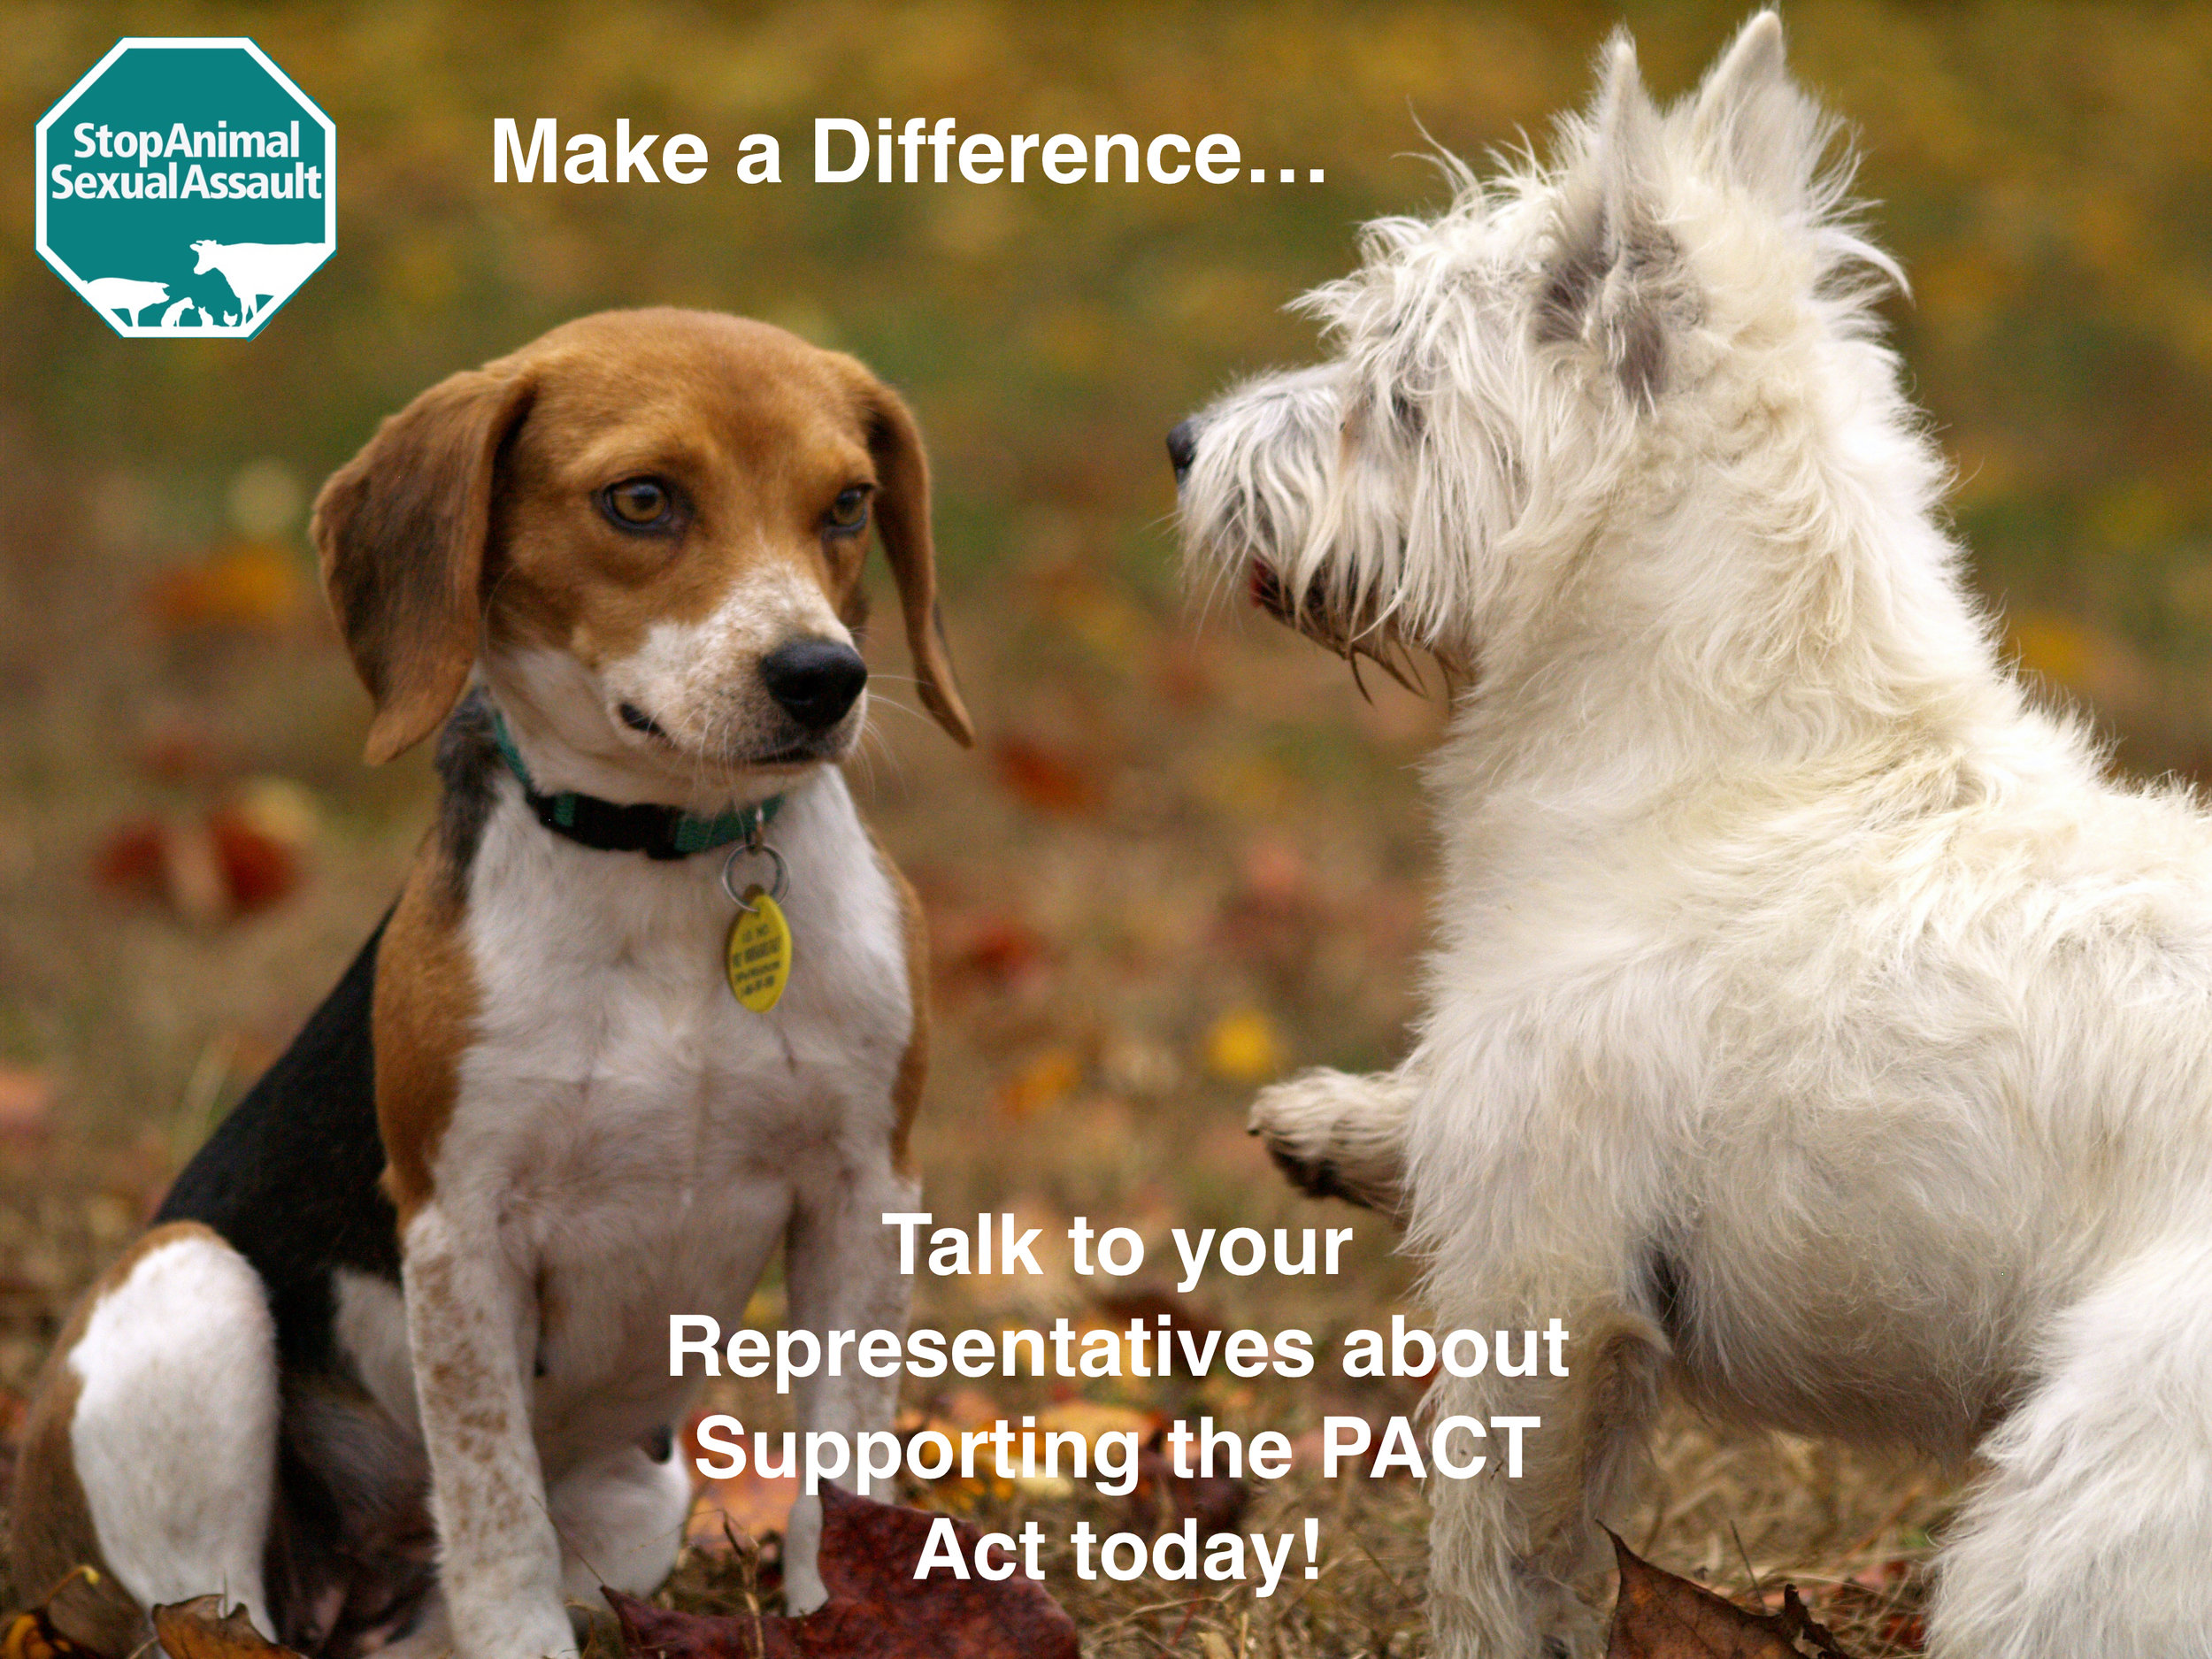 Talk to Rep Today abt PACT Act.jpeg